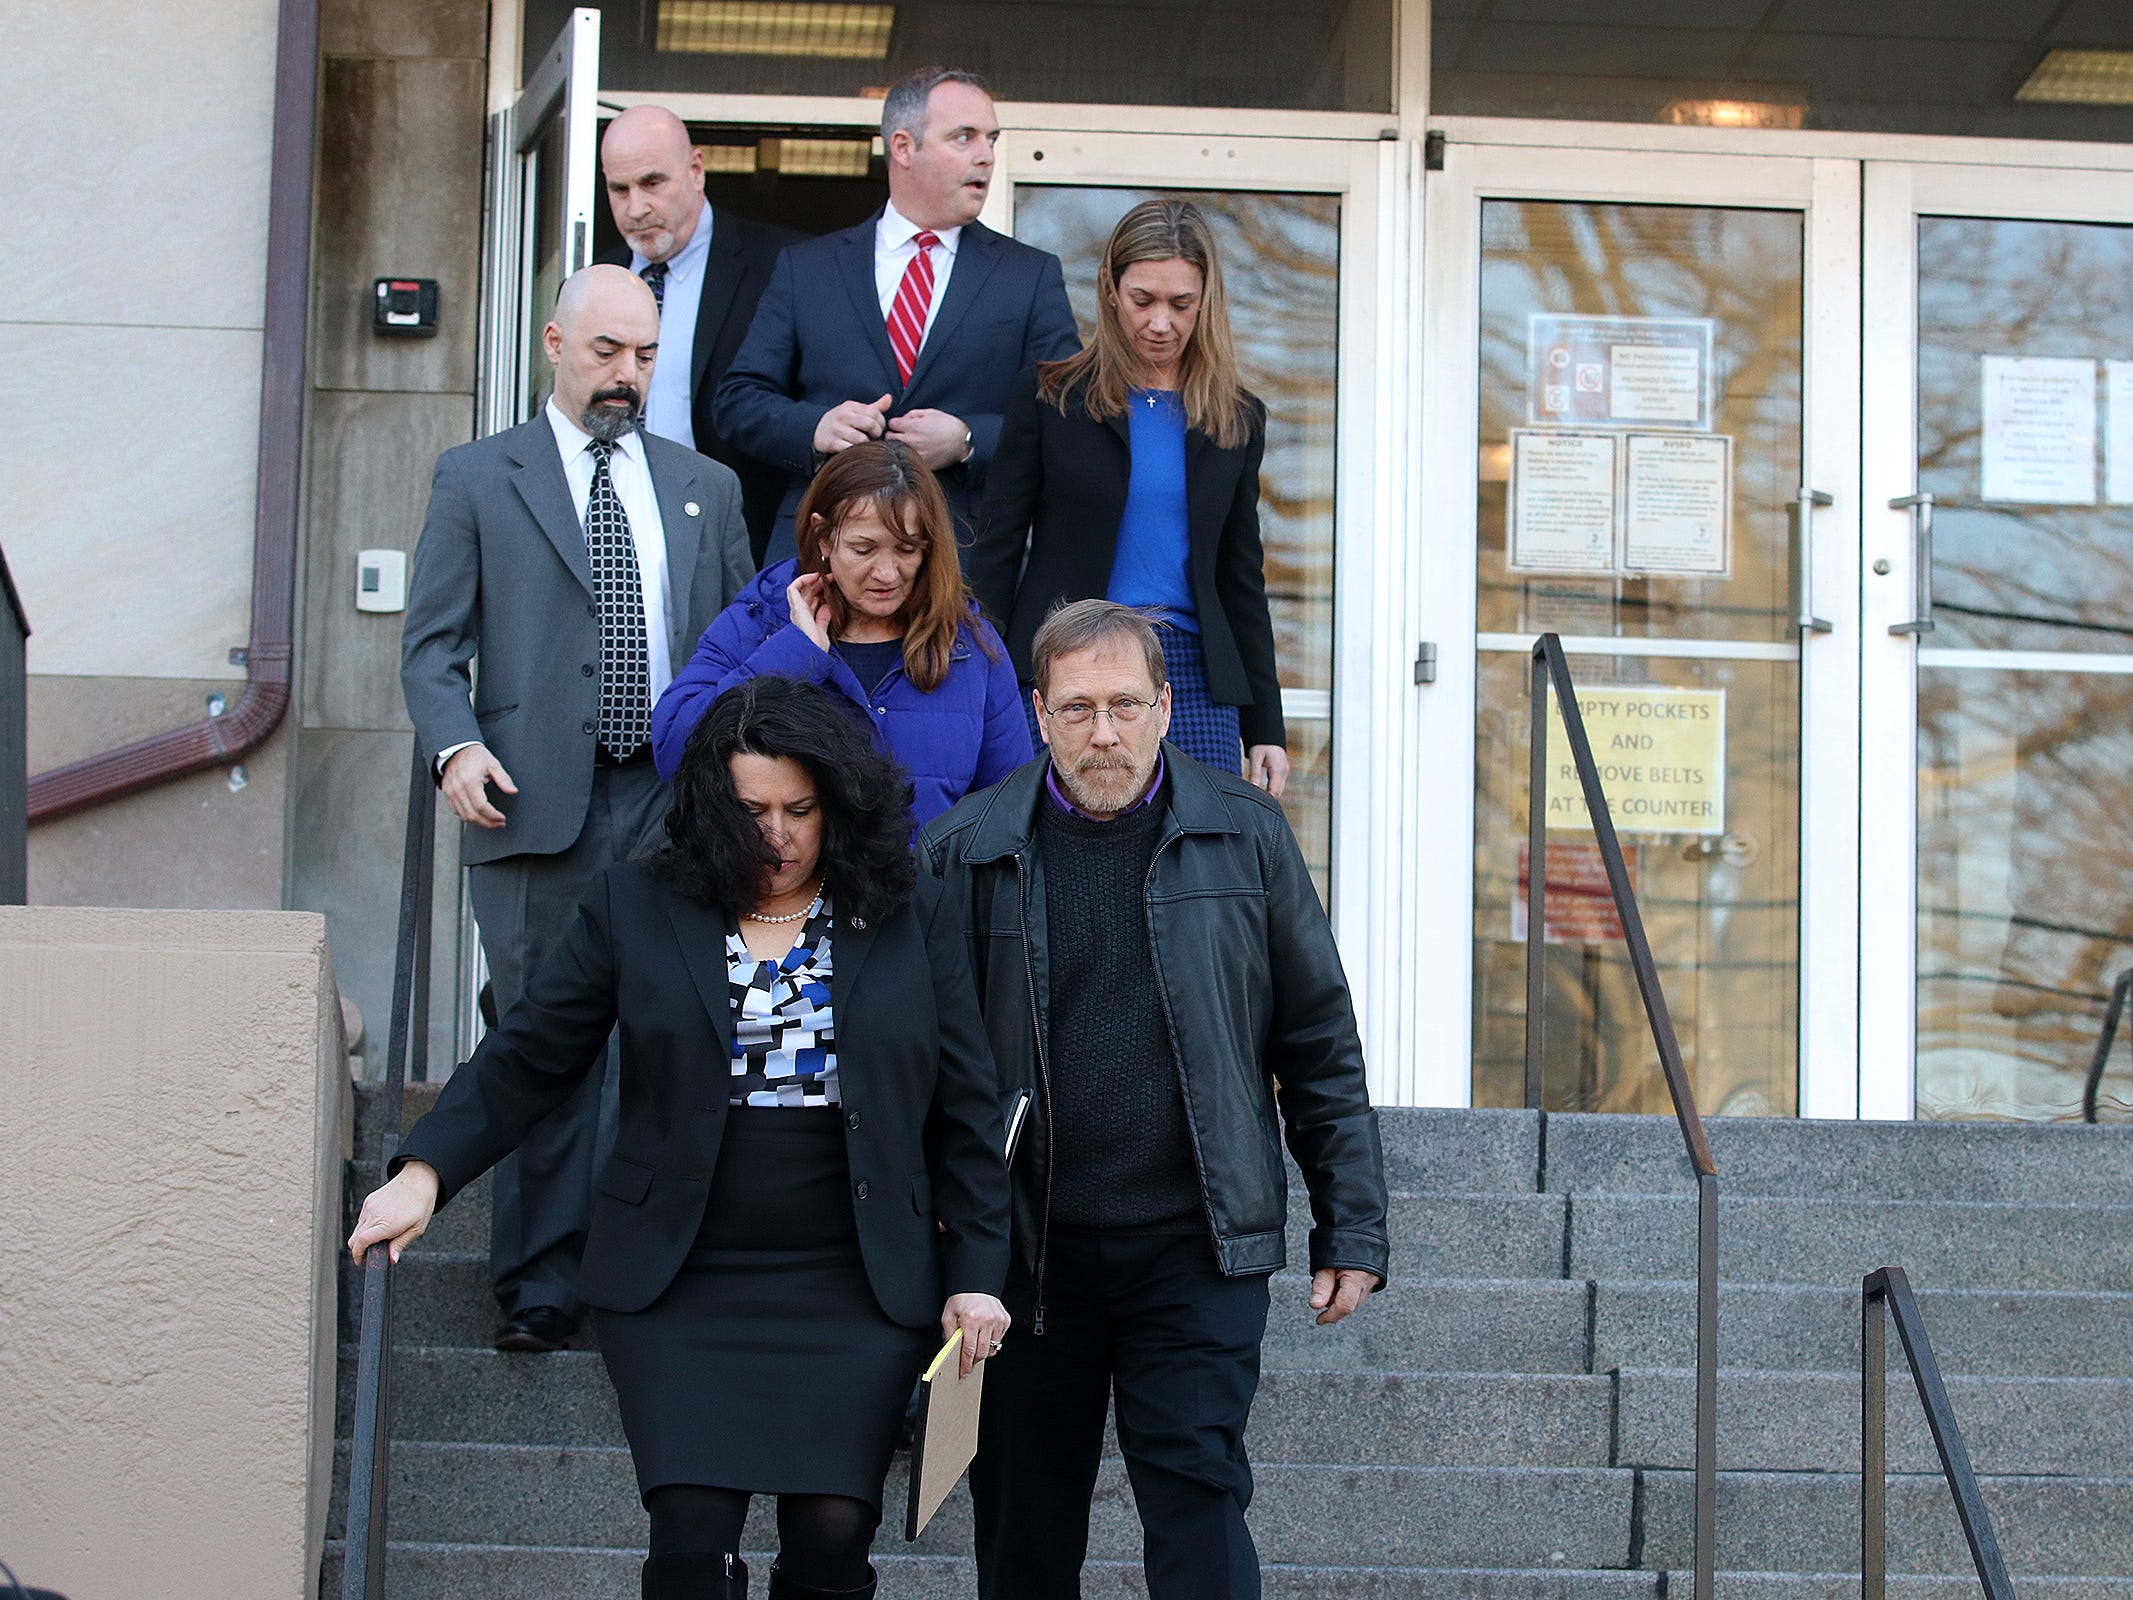 Michael Stern, father of Sarah Stern, attends a press conference with members of the Monmouth County Prosecutor's Office after the the jury found Liam McAtasney guilty on all charges in the murder of former high school classmate, Sarah Stern, at the Monmouth County Courthouse in Freehold, NJ Tuesday, February 26, 2019.